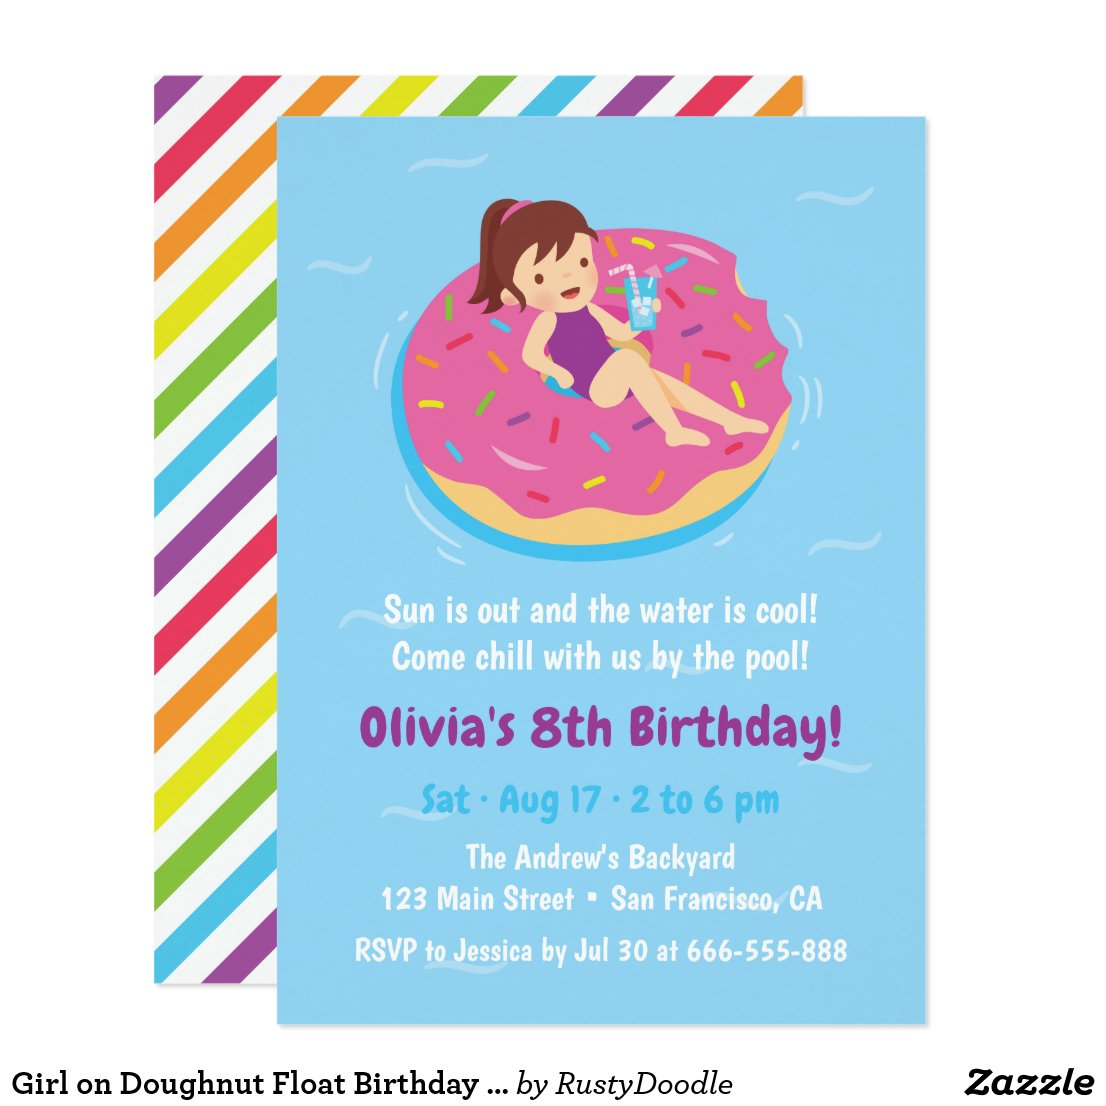 Girl on Doughnut Float Birthday Party Invitations